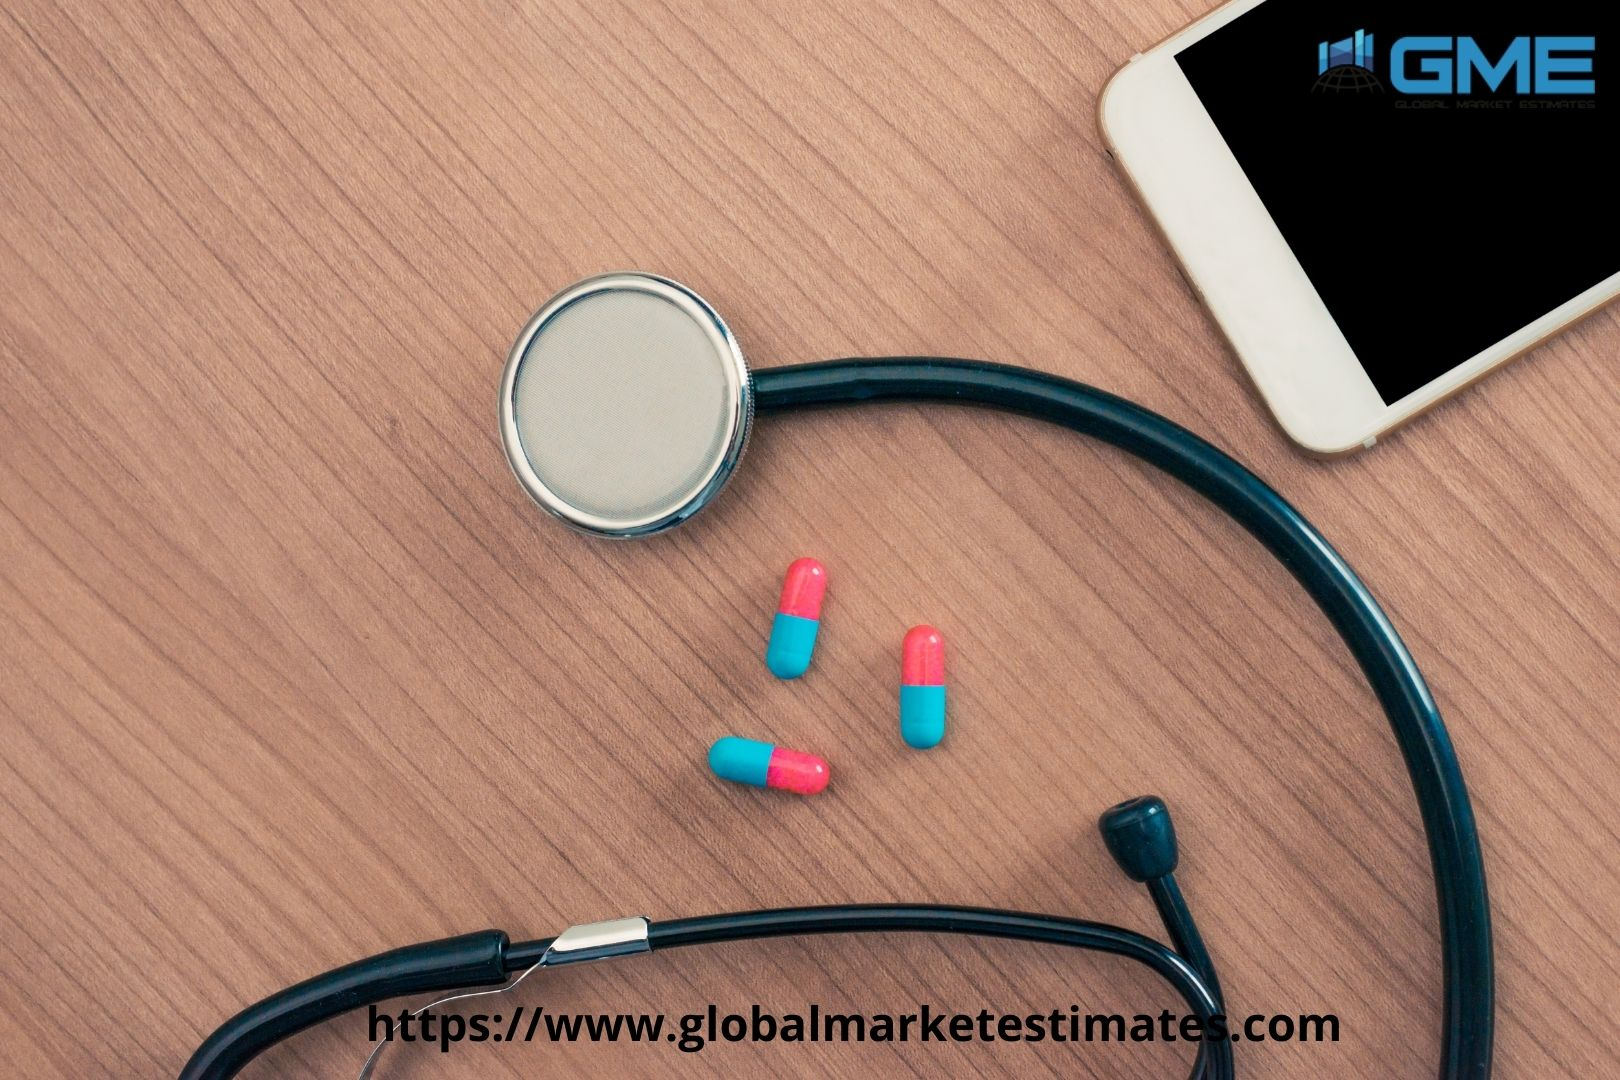 Smart stethoscope Market